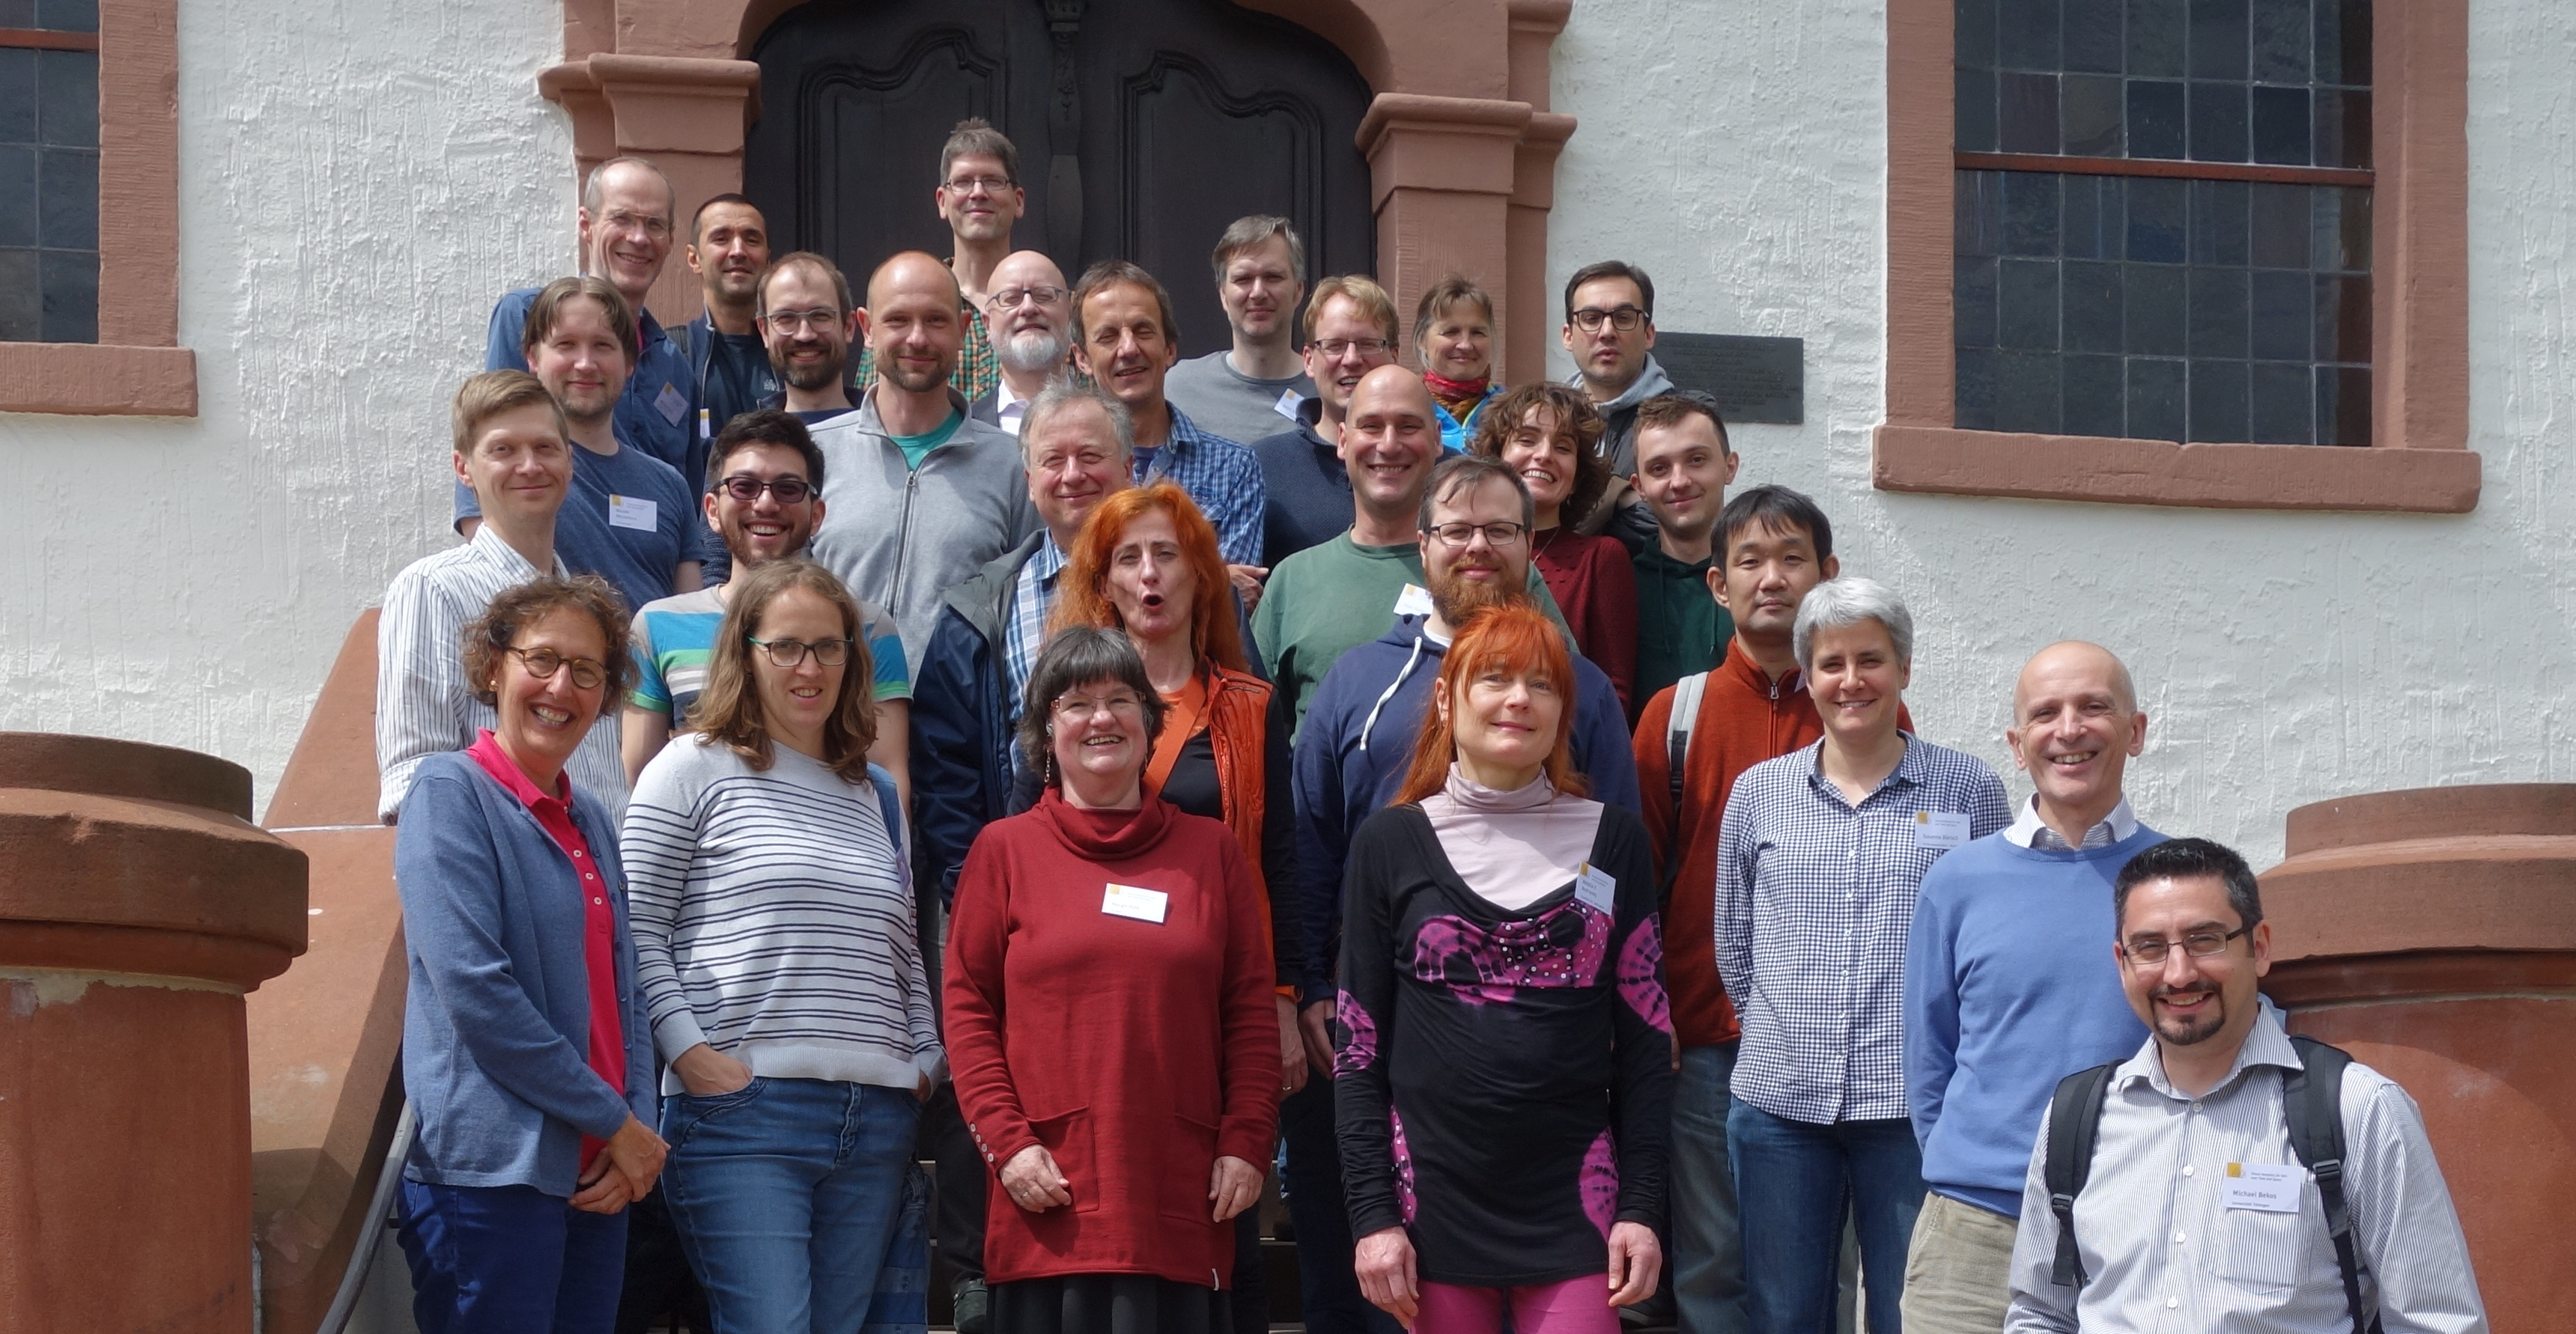 Dagstuhl-Seminar on Visual Analytics for Sets over Time and Space